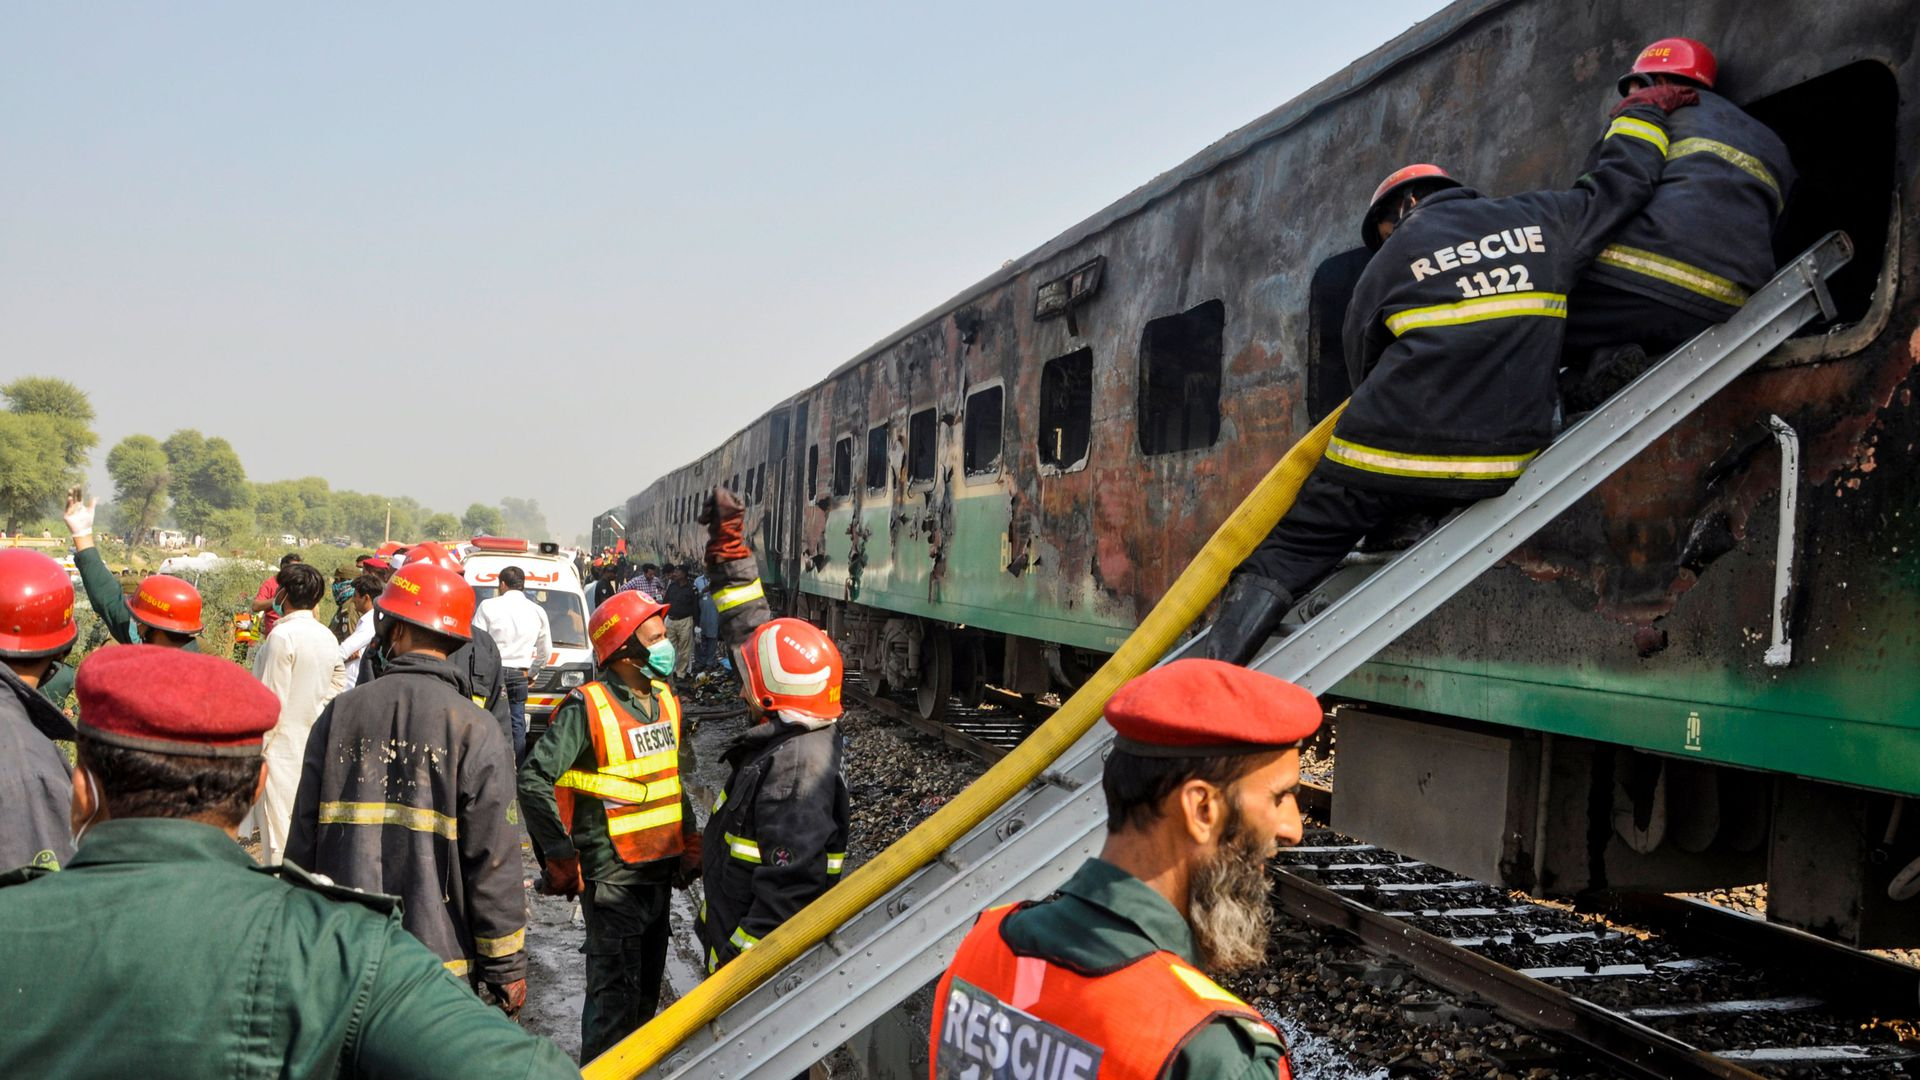 Firefighters work to cool down the burnt-out train carriages.